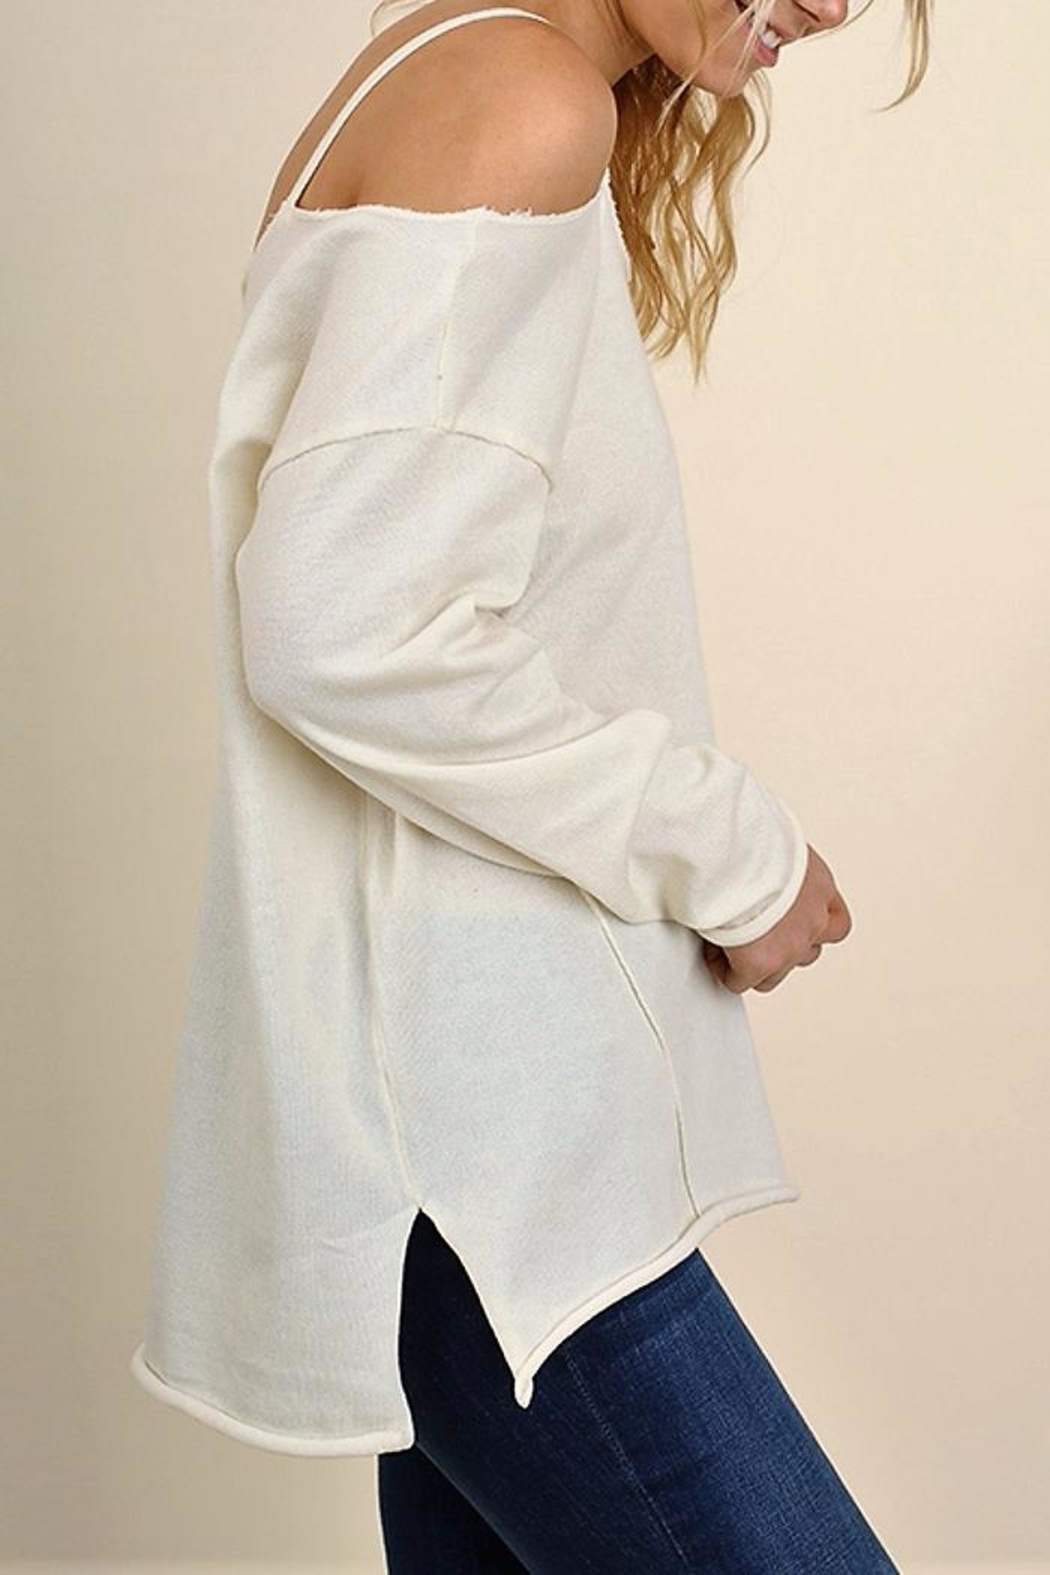 People Outfitter Eternity Cold Shoulder Top - Side Cropped Image